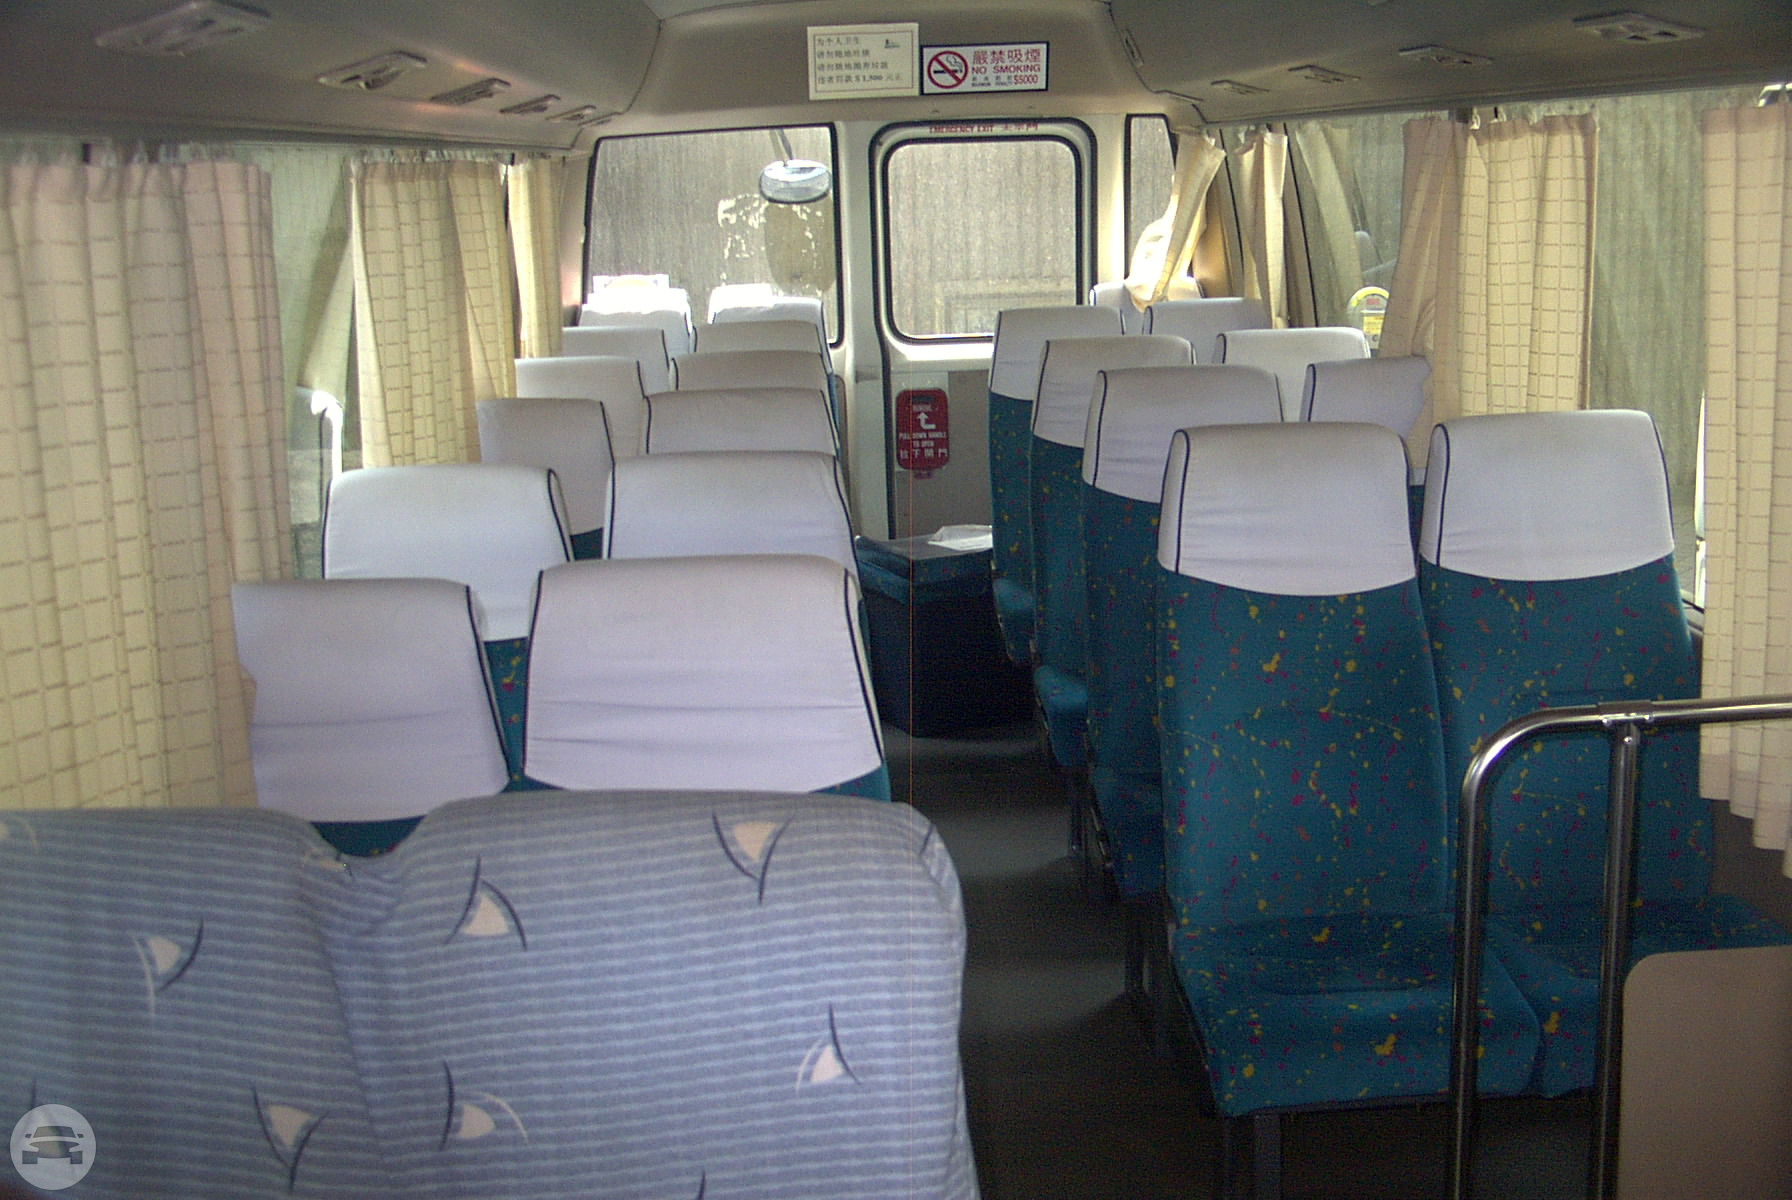 Shuttle Bus - 28 Seats Coach Bus / Kowloon, Hong Kong   / Hourly HKD 385.00  / Airport Transfer HKD 950.00